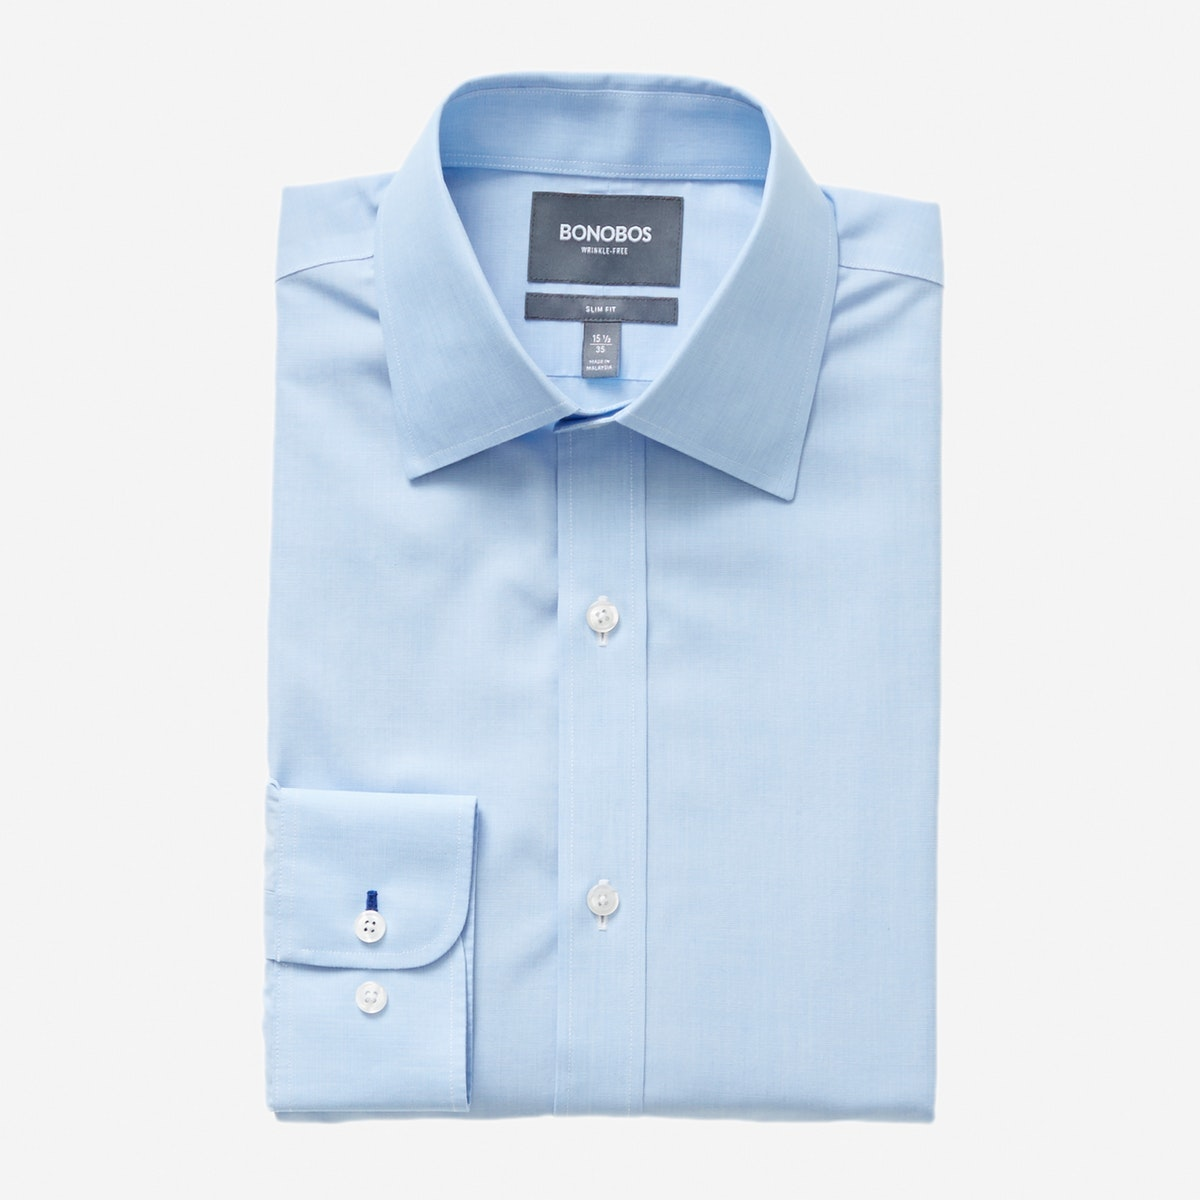 Daily Grind Wrinkle Free Dress Shirt Pocket Bonobos